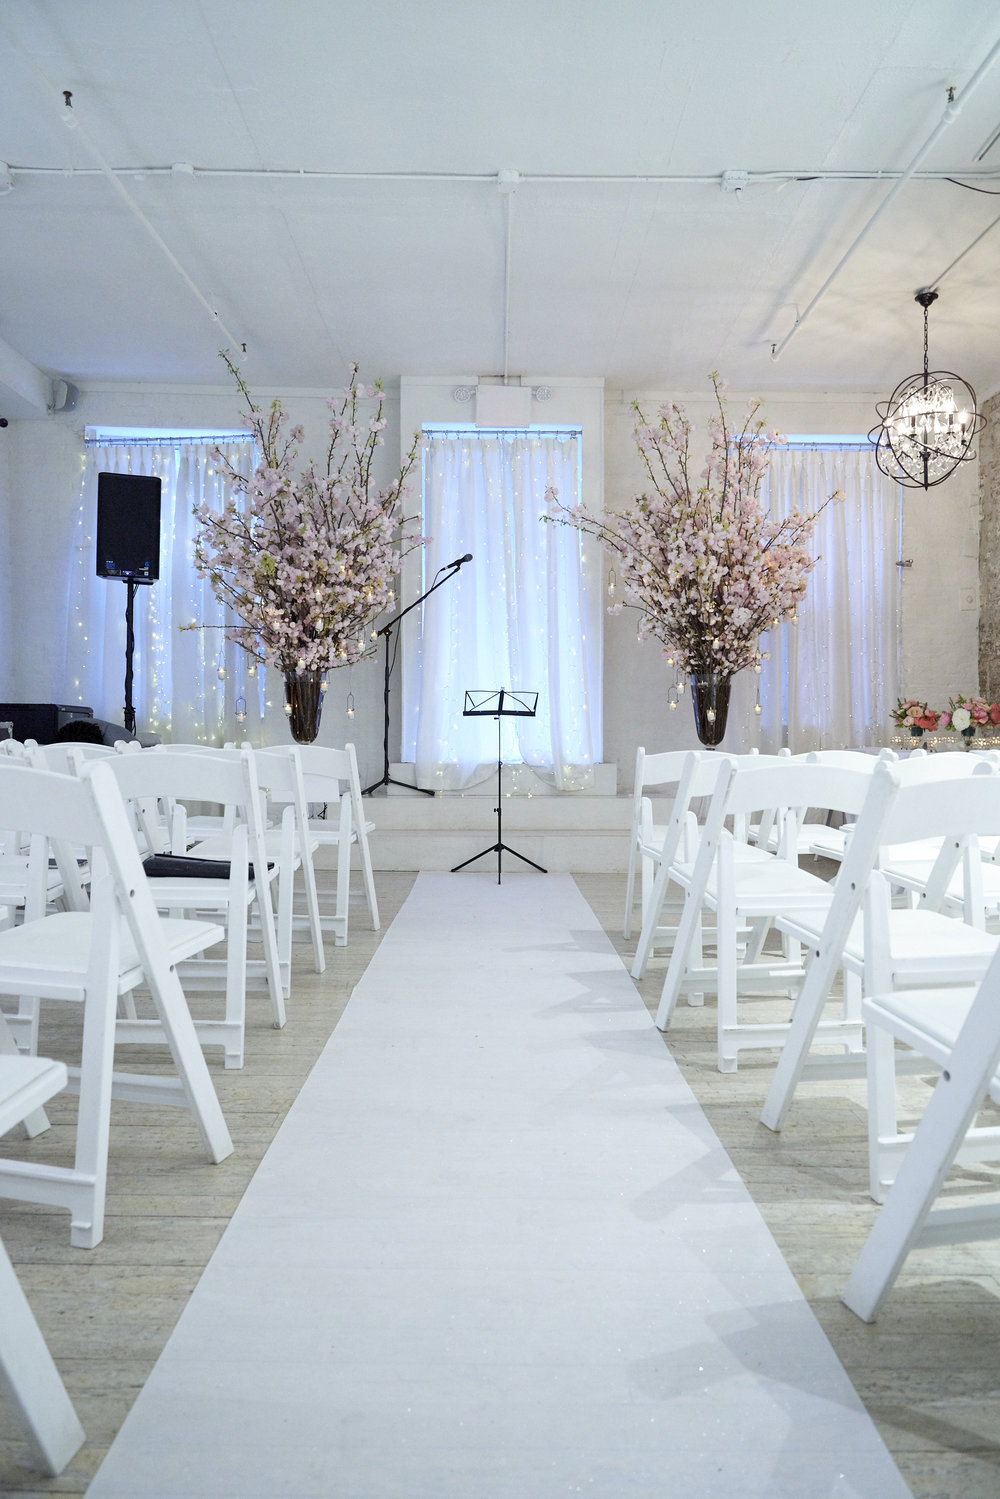 richard_baranyai_wedding_reception_loft29_nyc.jpg